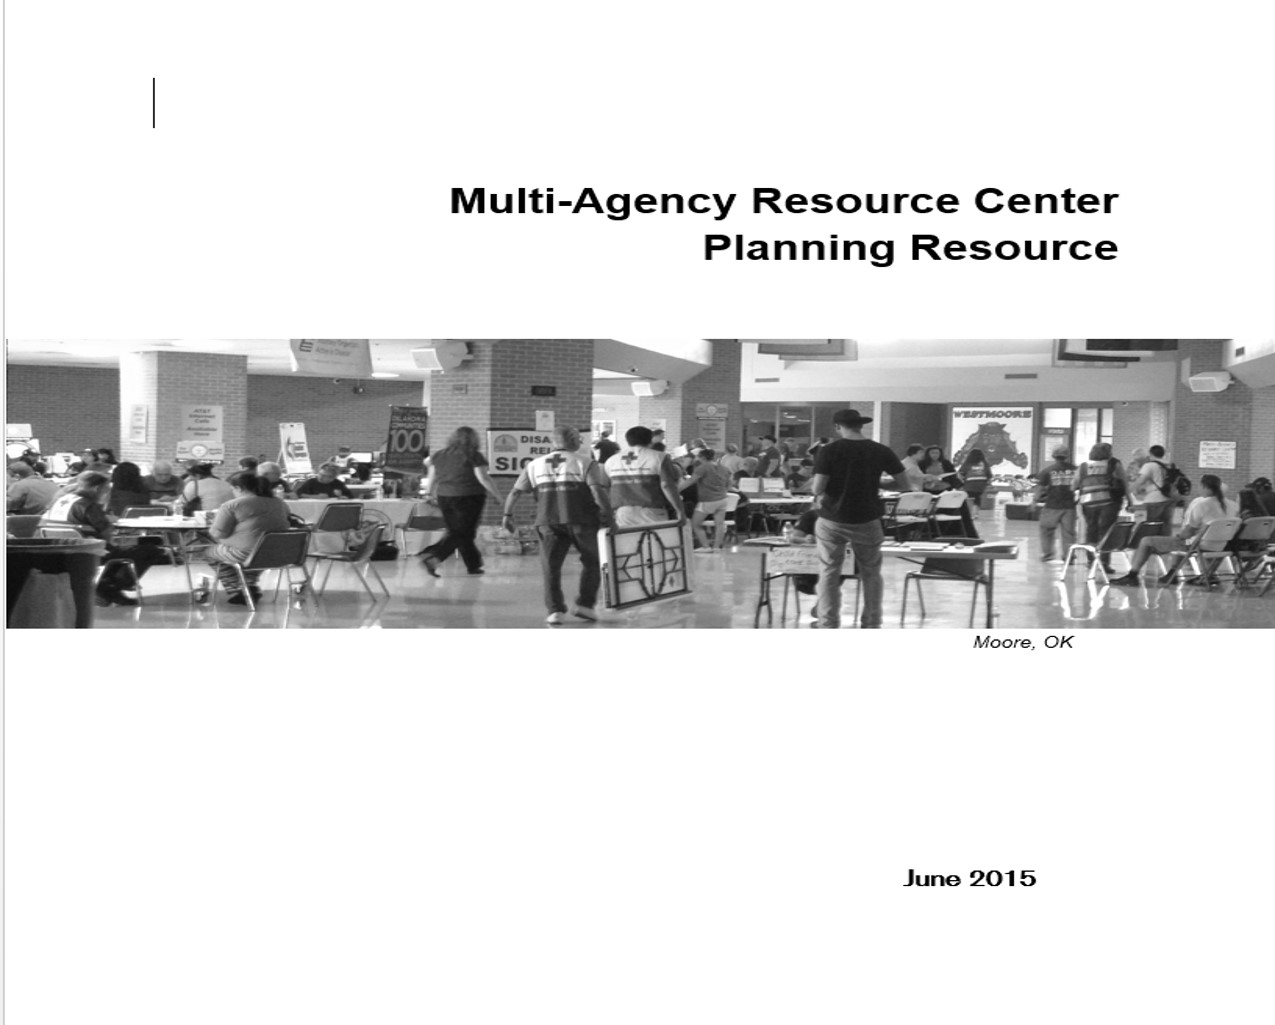 Multi-Agency Resource Center (MARC) Planning Resource